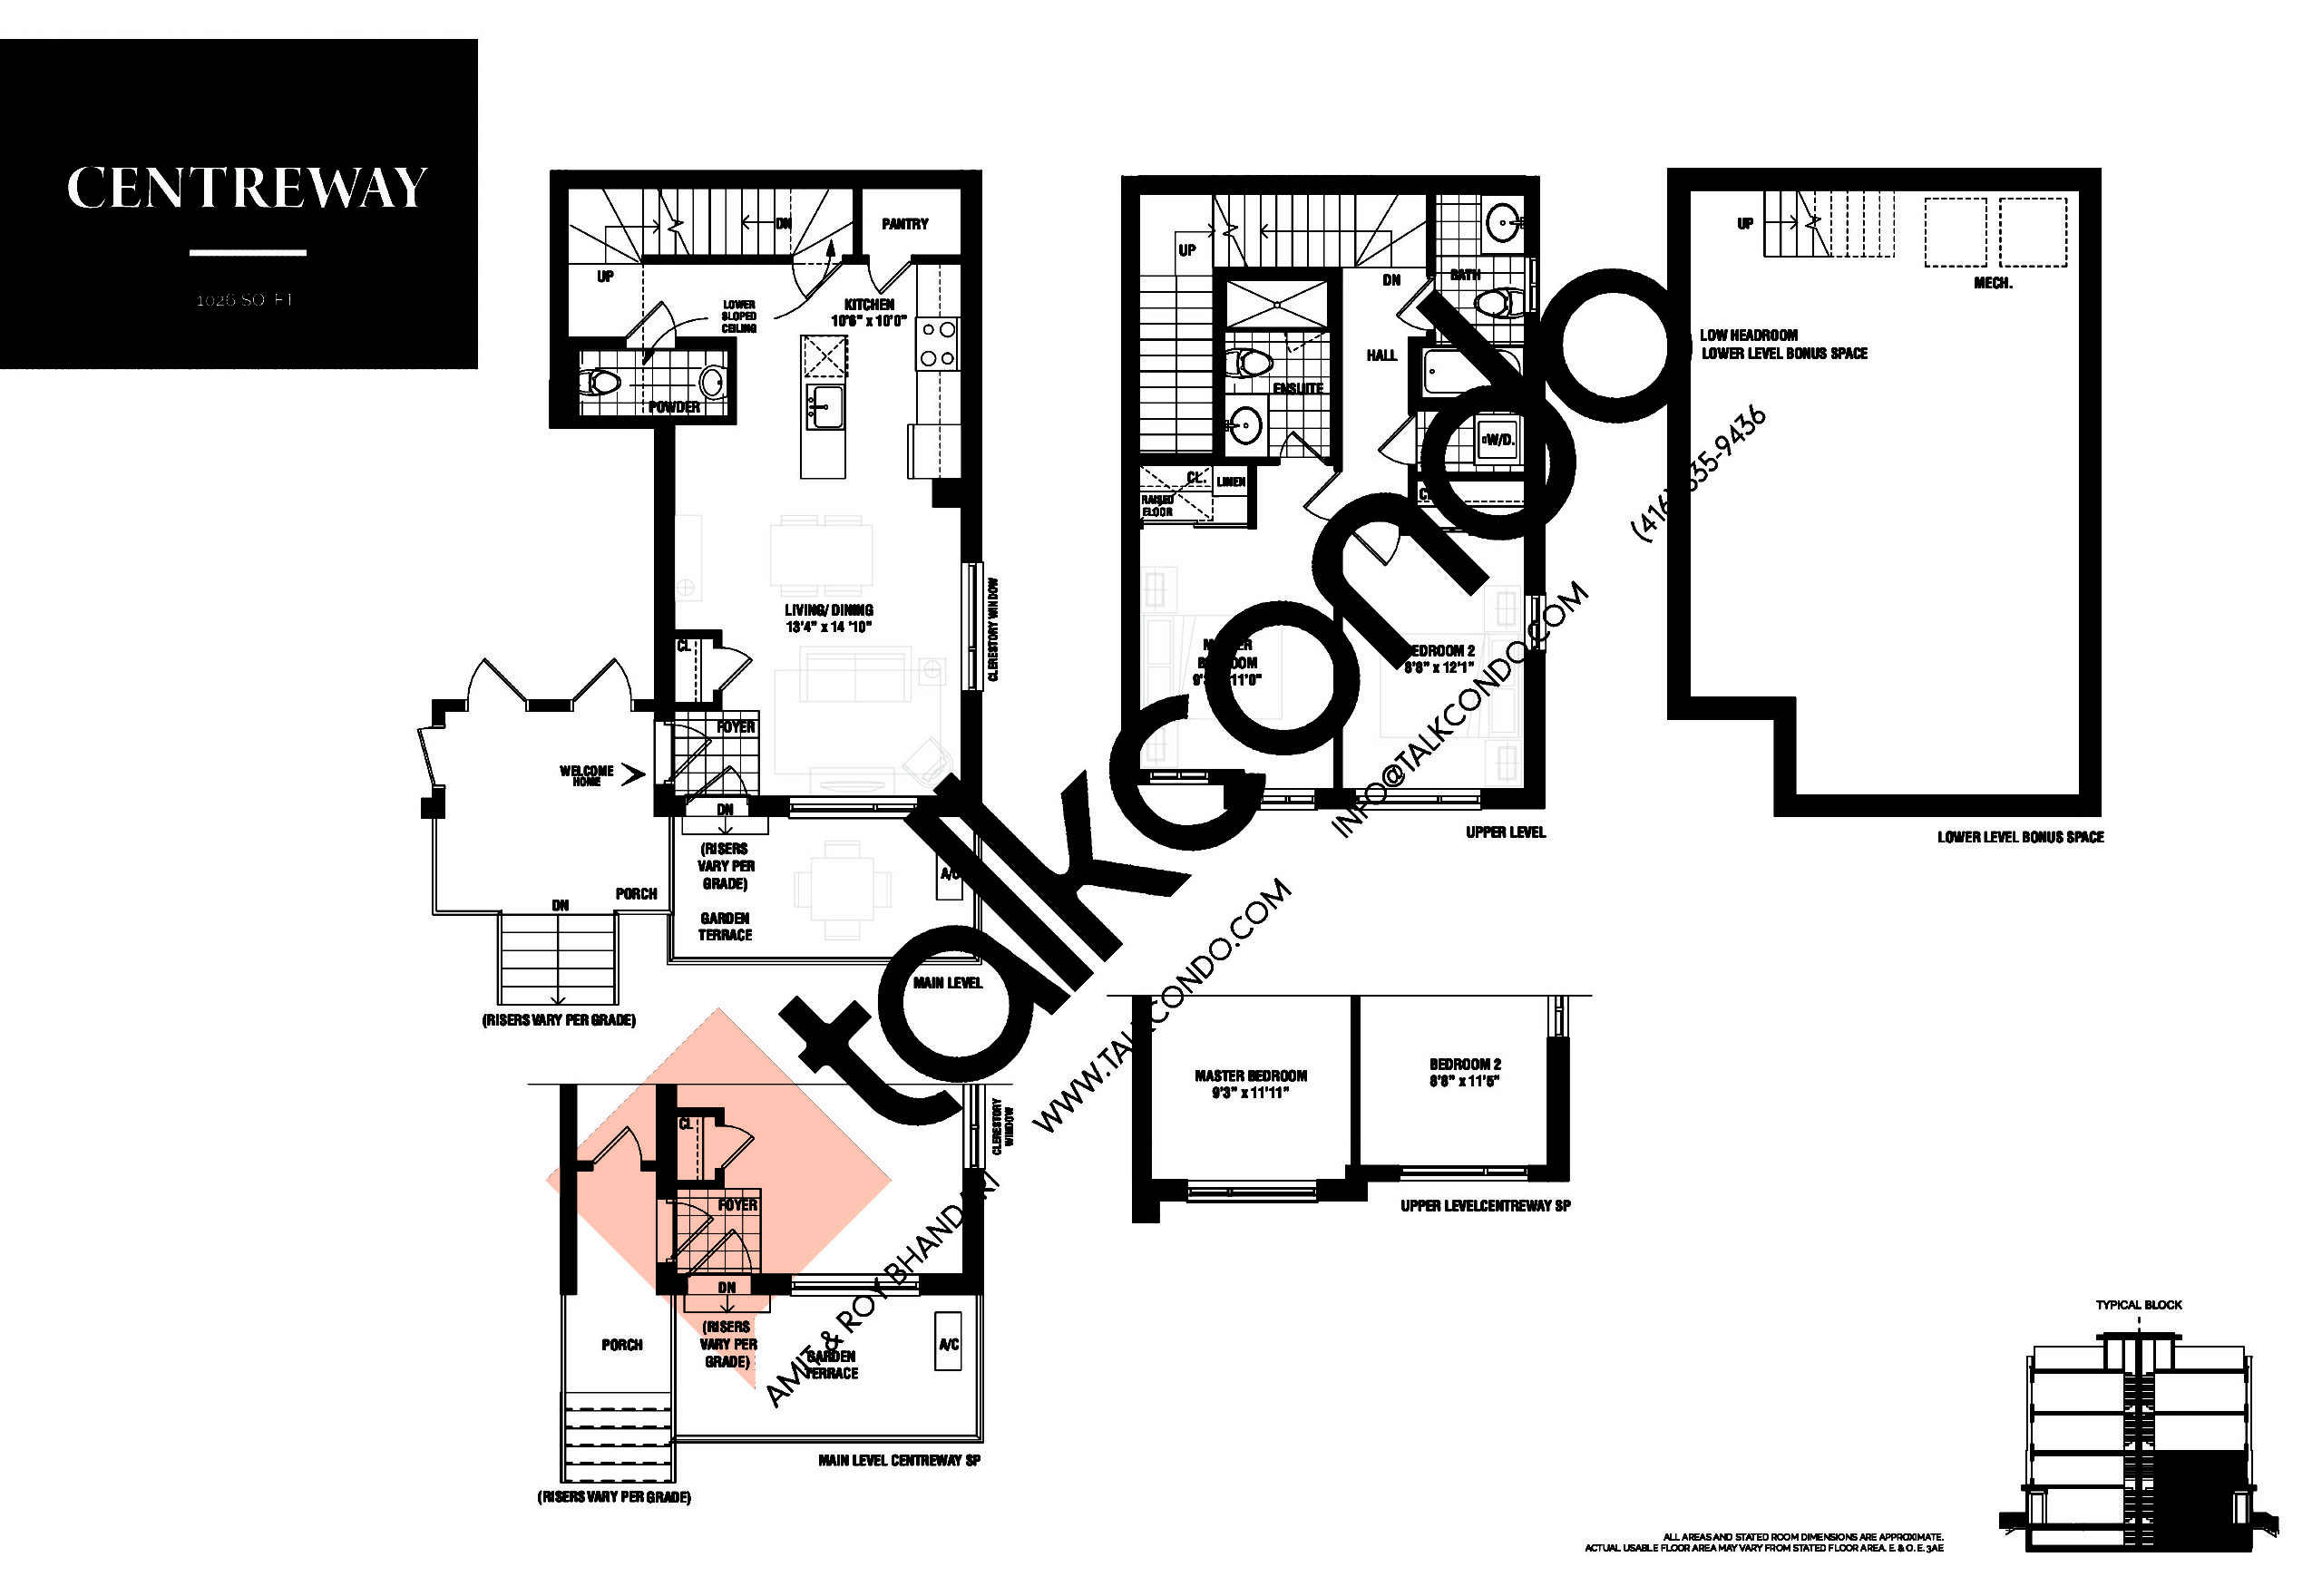 Centreway Floor Plan at The Way Urban Towns Phase 2 - 1026 sq.ft